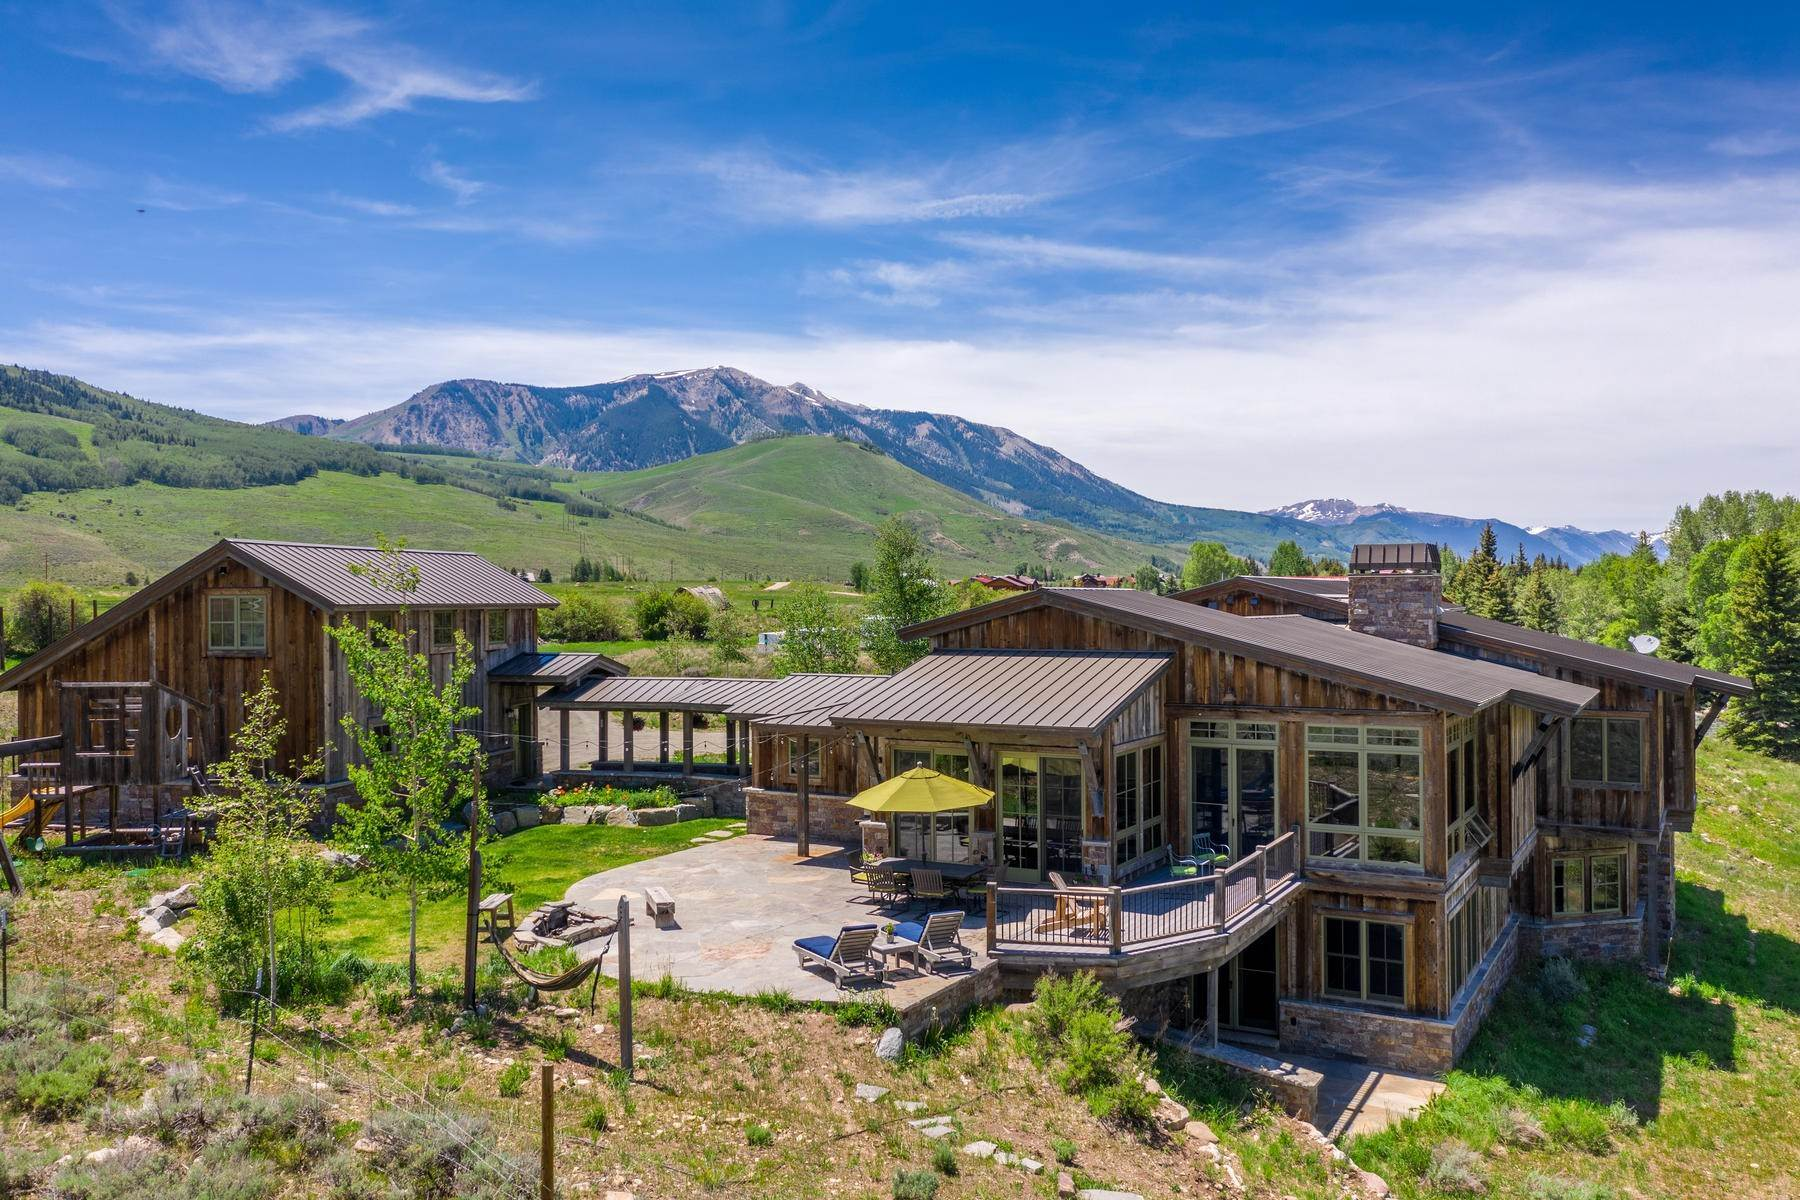 Single Family Homes for Sale at River Estate Overlooking the East River 82 County Road 740 Crested Butte, Colorado 81224 United States